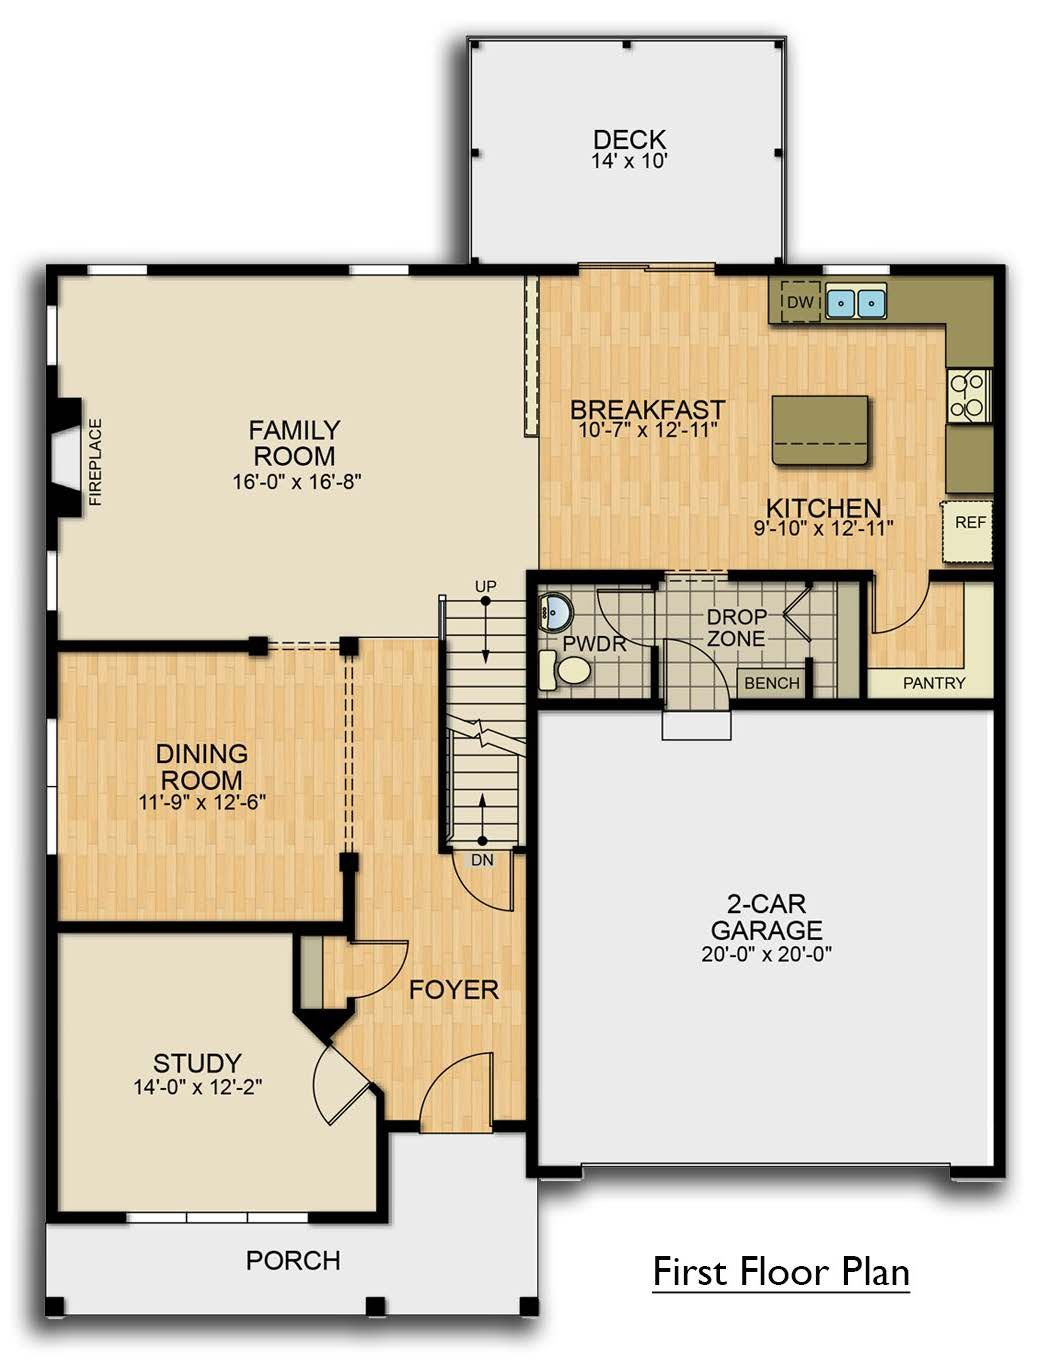 The Sienna floor plan by Garman Builders. First Floor ... on deck plans, ceiling plans, roof plans, houseboat plans, construction plans, garden plans, lighting plans, foundation plans, framing plans, basement plans, room plans, garage plans, apartment plans,